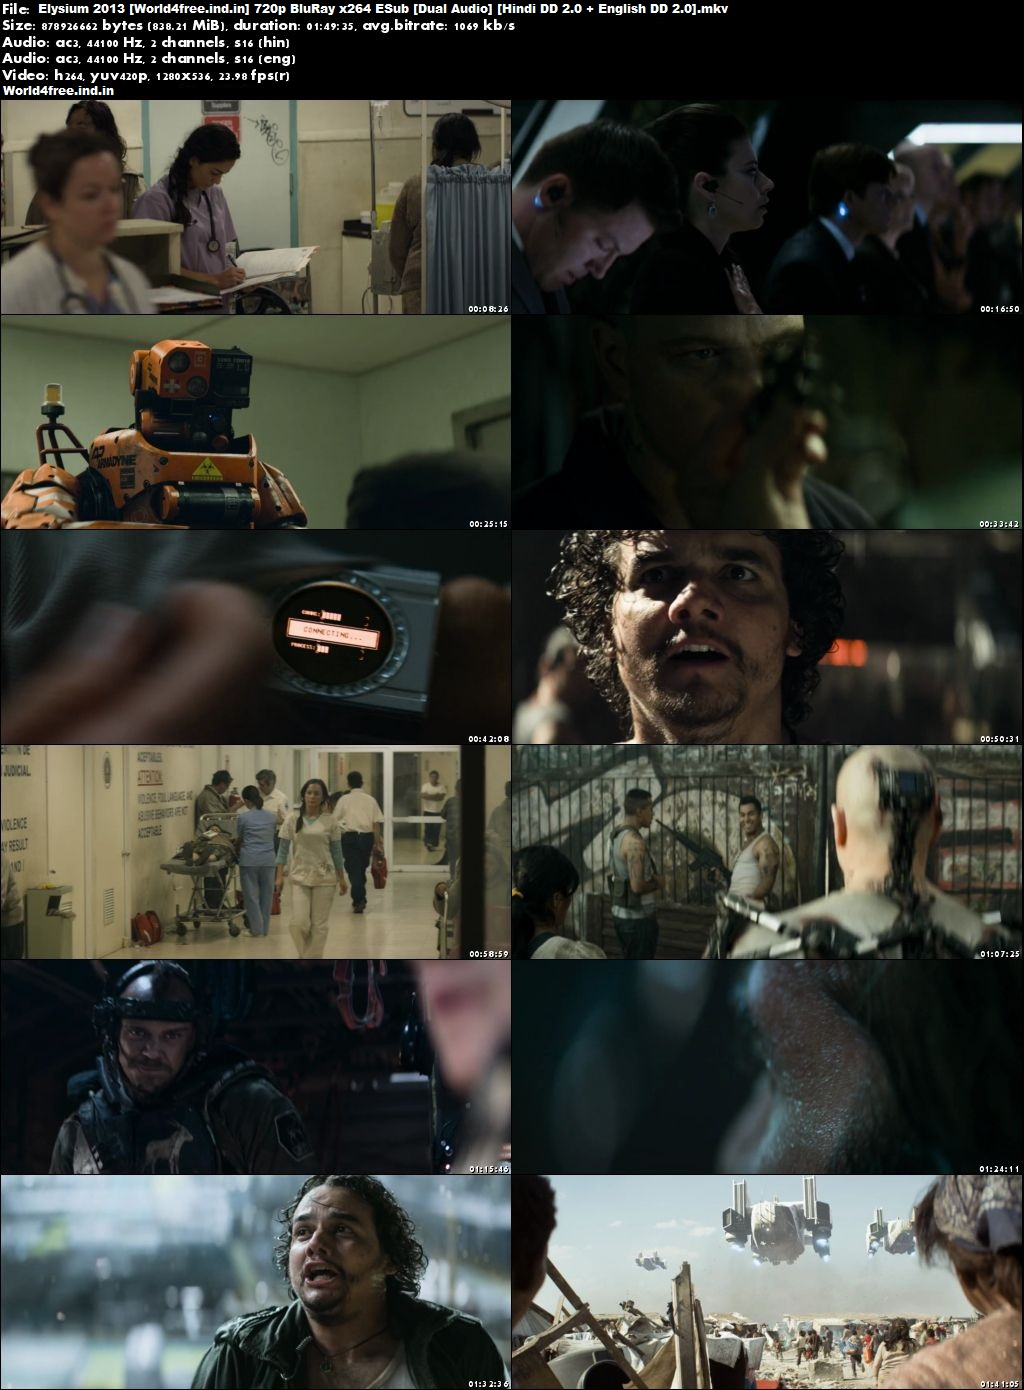 Elysium 2013 world4free.ind.in Dual Audio BRRip 1080p Hindi English ESub